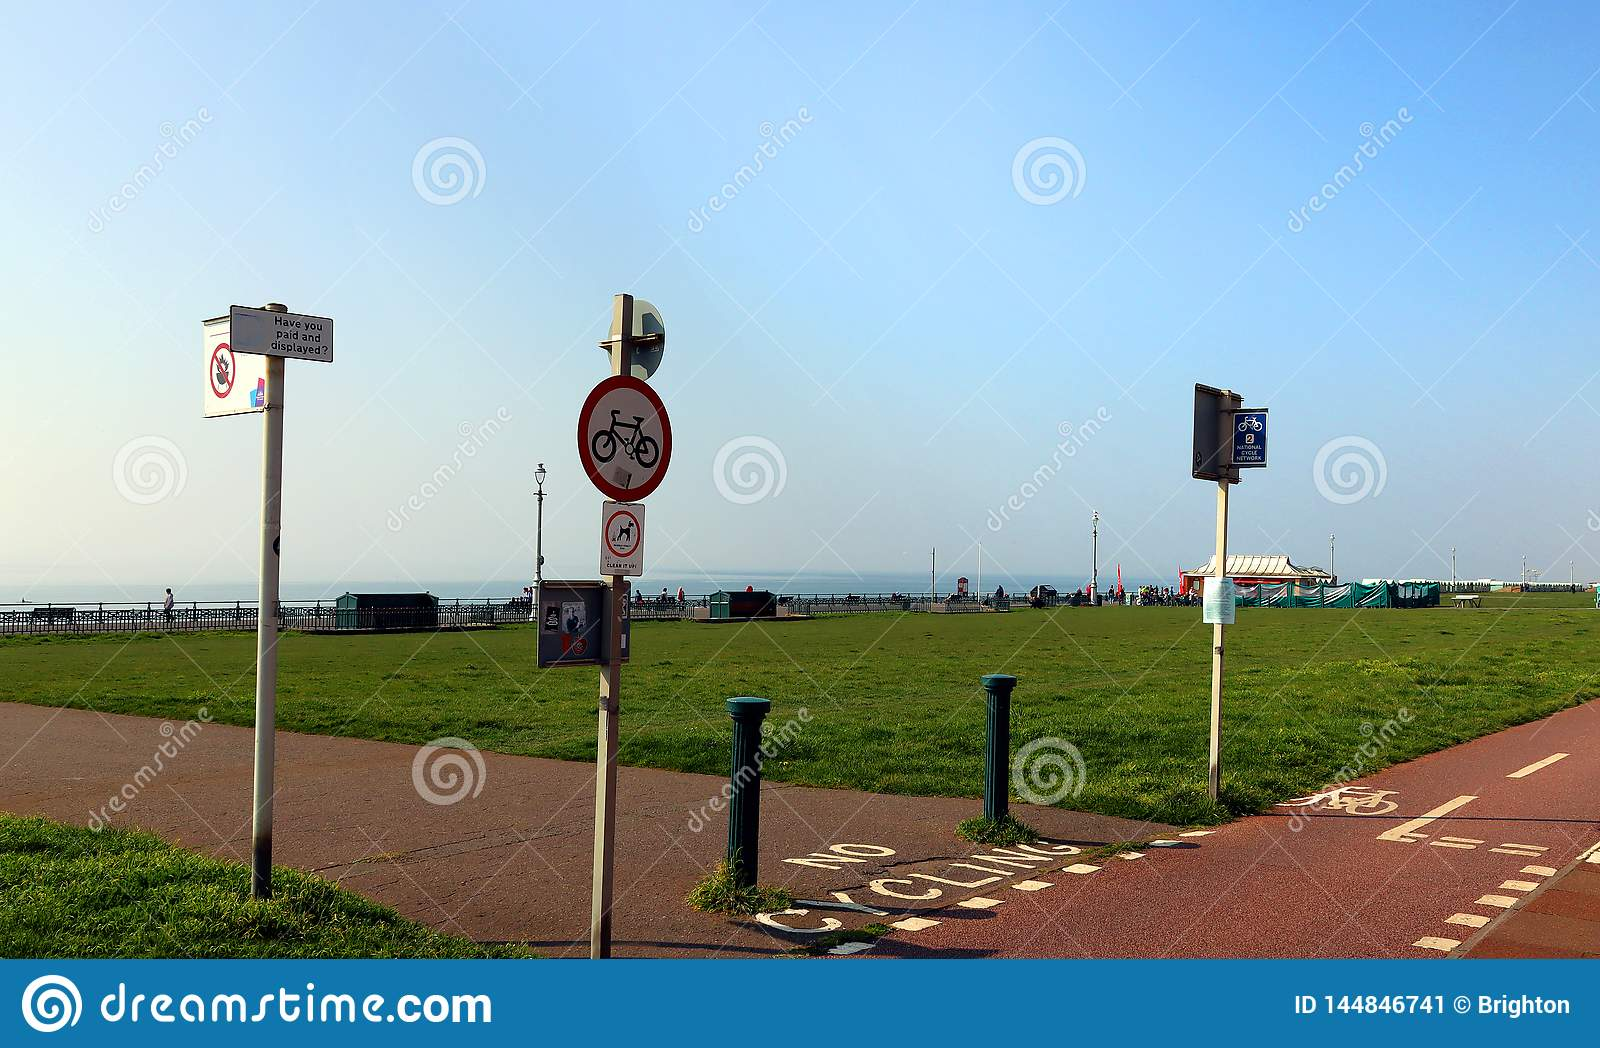 Traffic signs by bike lanes on Hove Promenade